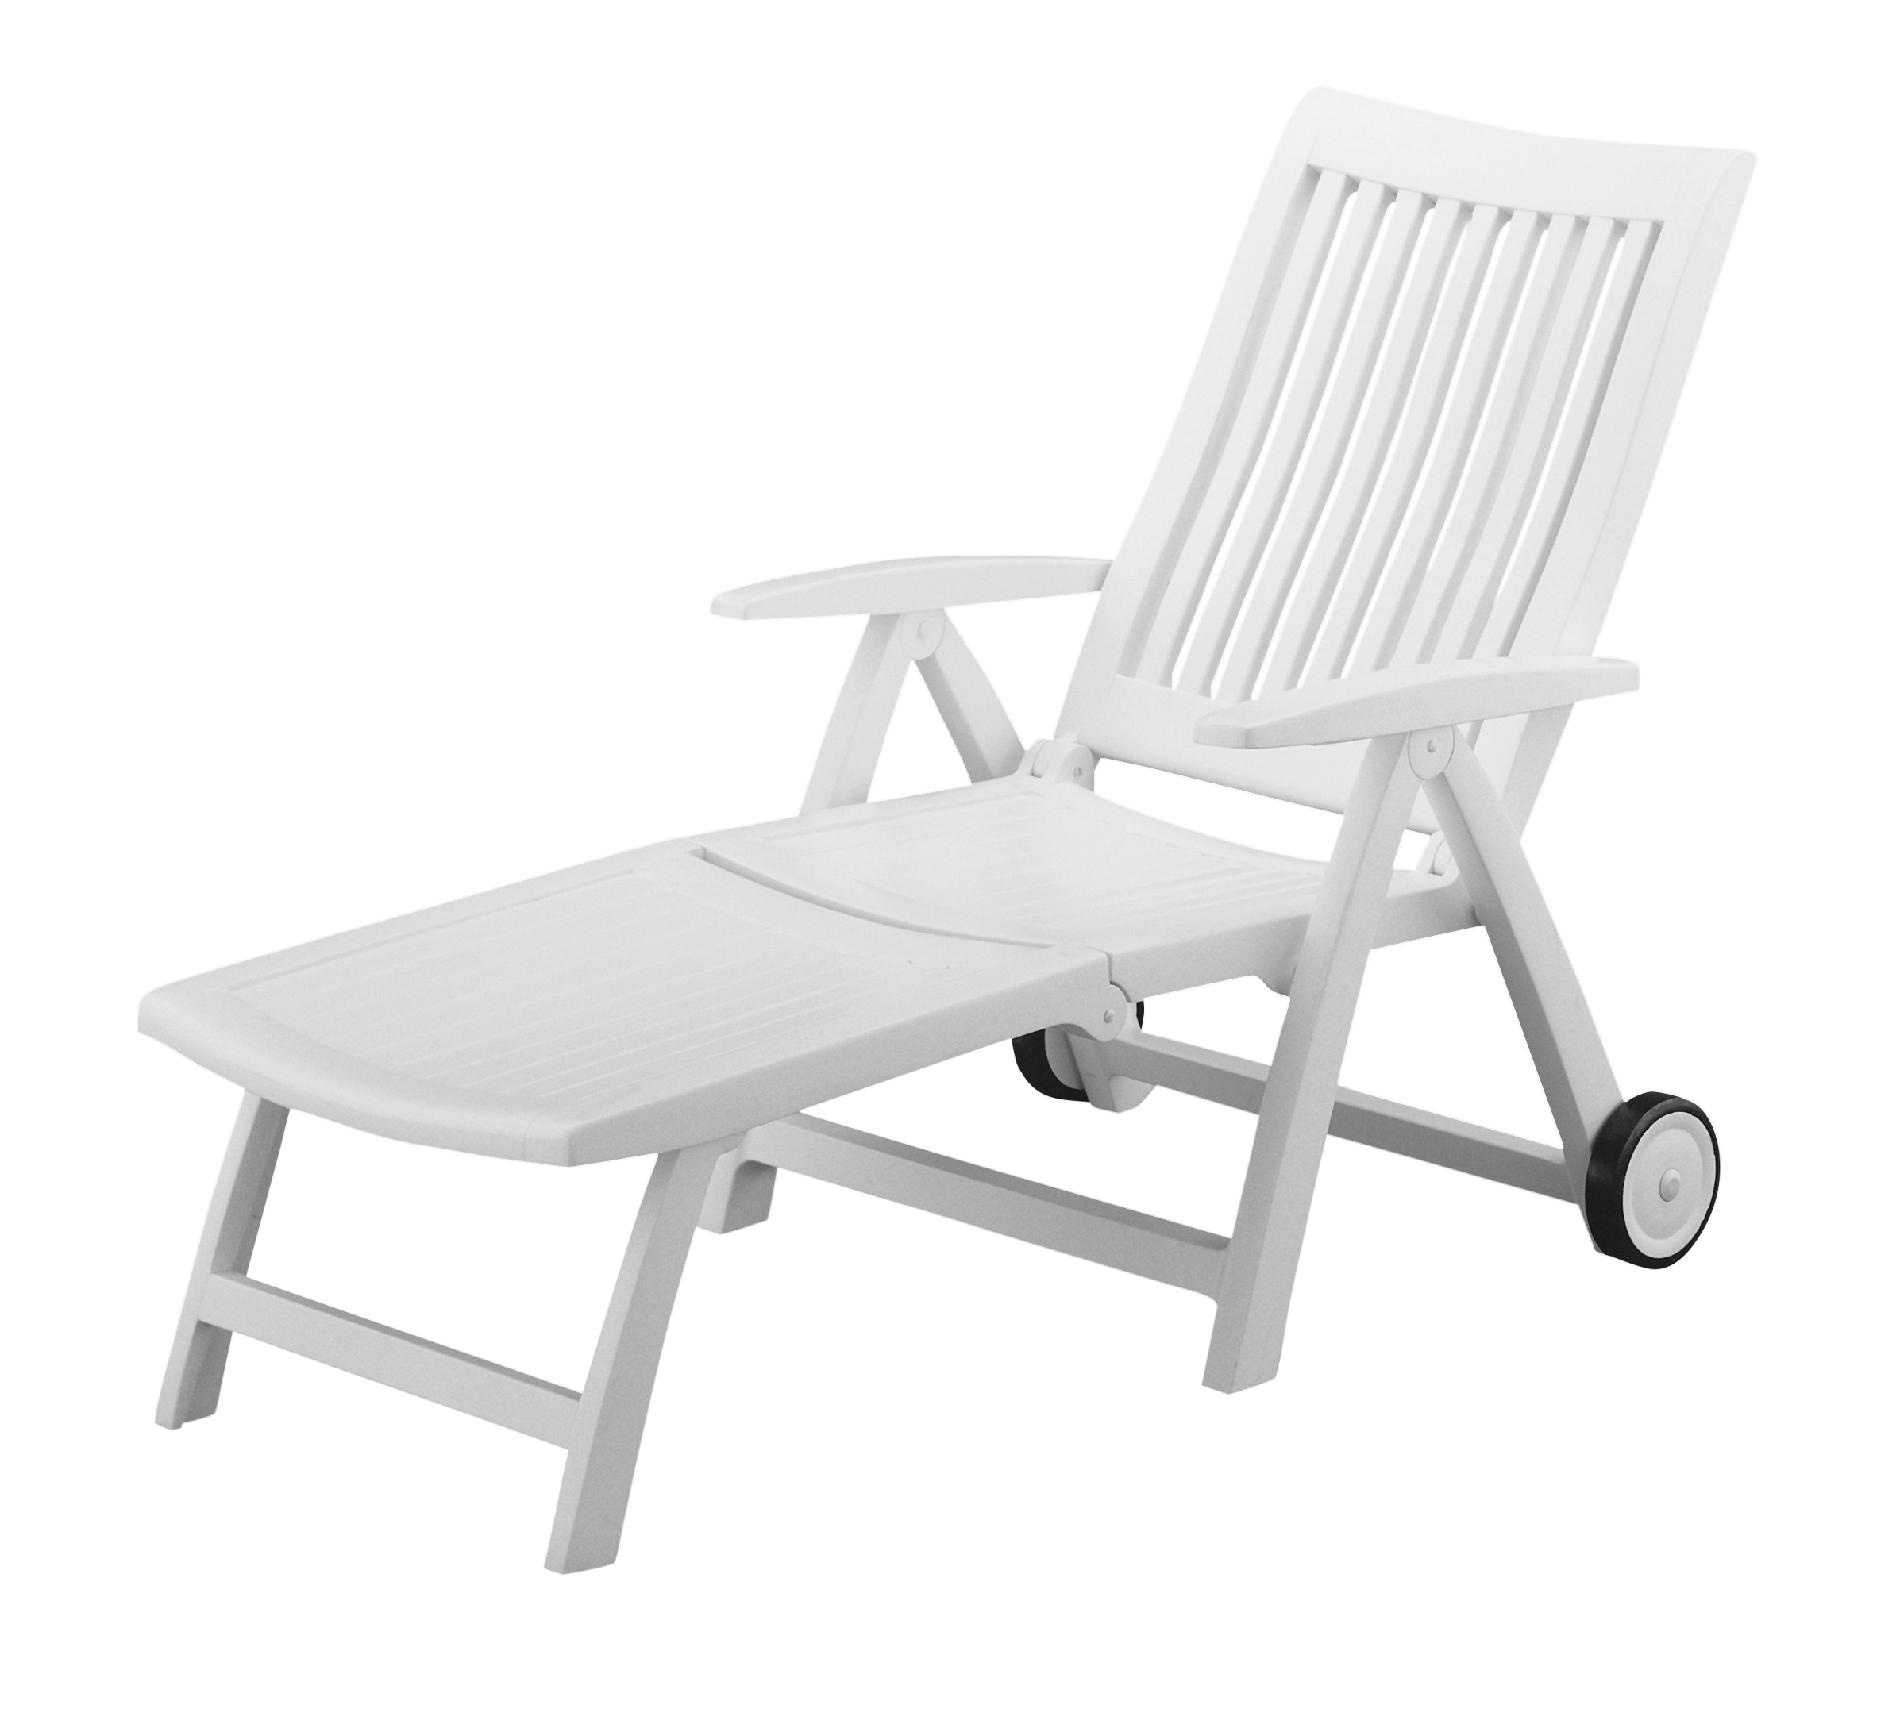 - Pool Chaise Lounge Chairs Resin. Nd40417 Omega Sling Plastic Resin